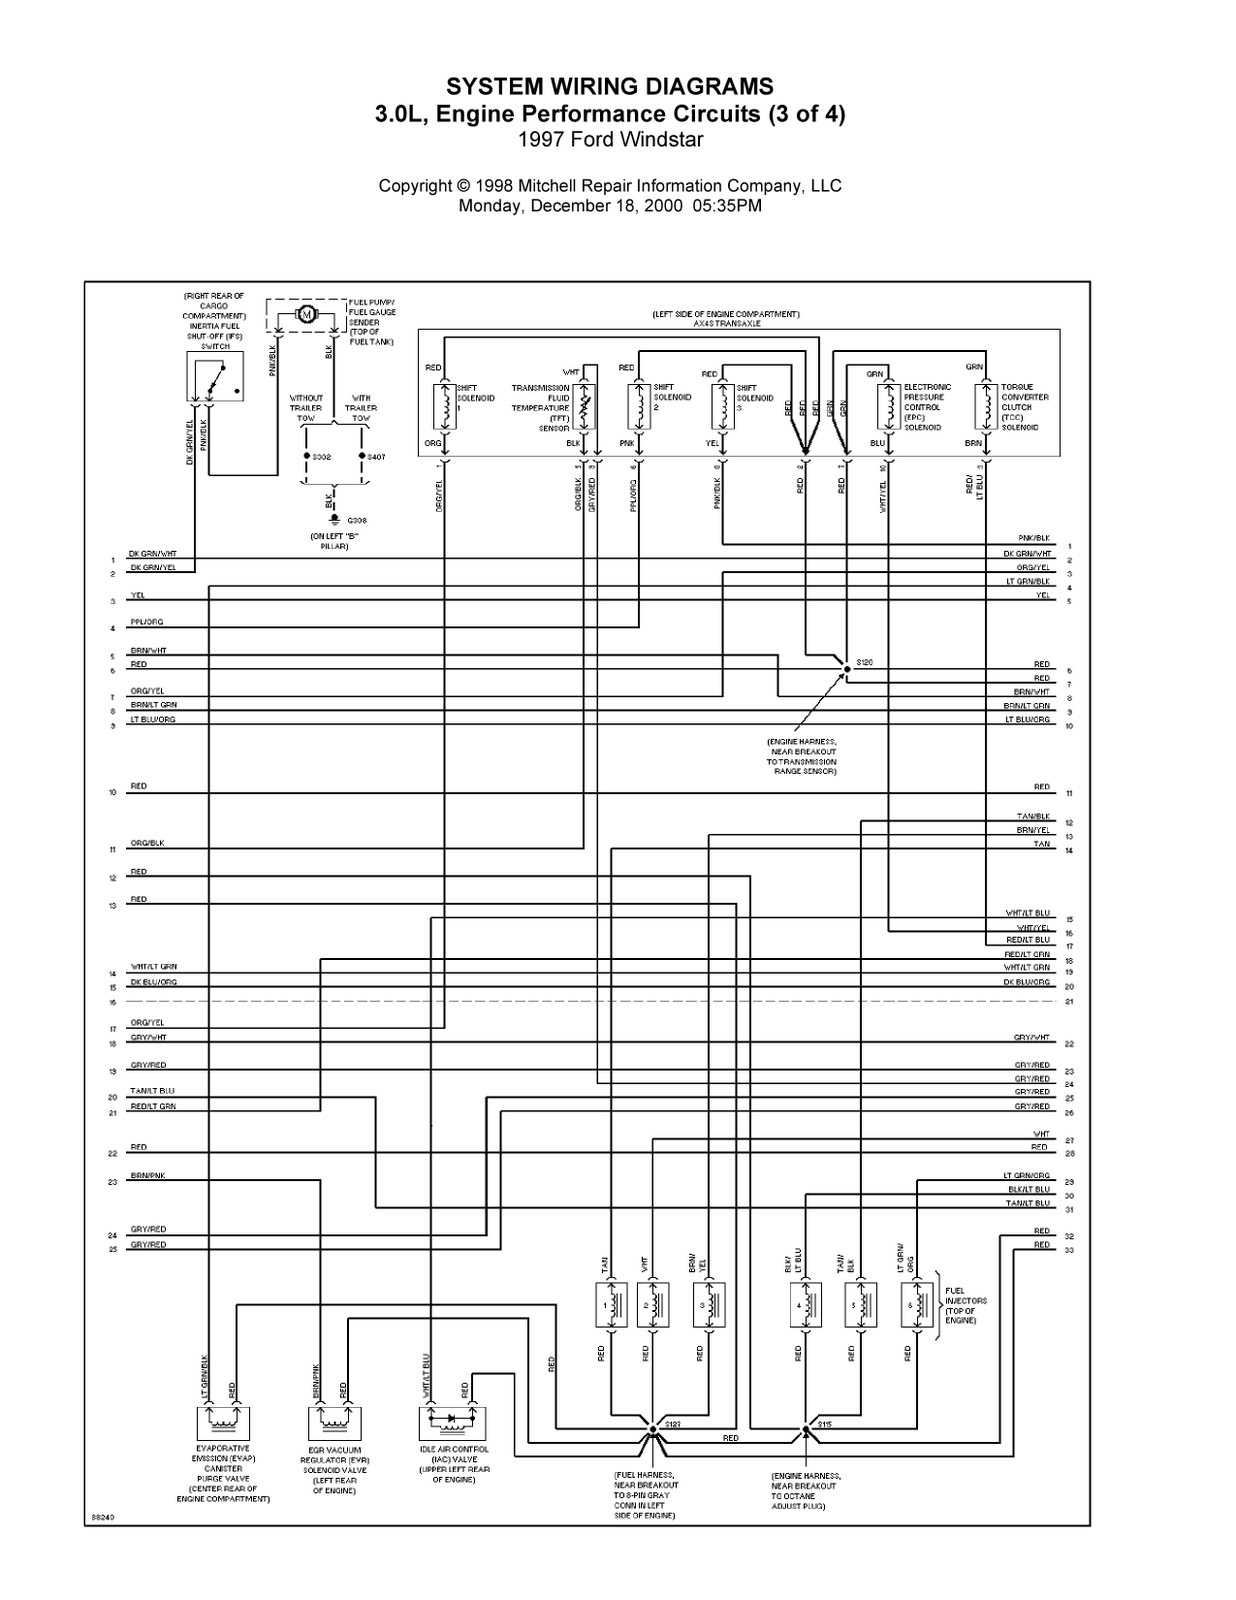 1997 ford windstar complete system wiring diagrams wiring diagrams center [ 1236 x 1600 Pixel ]